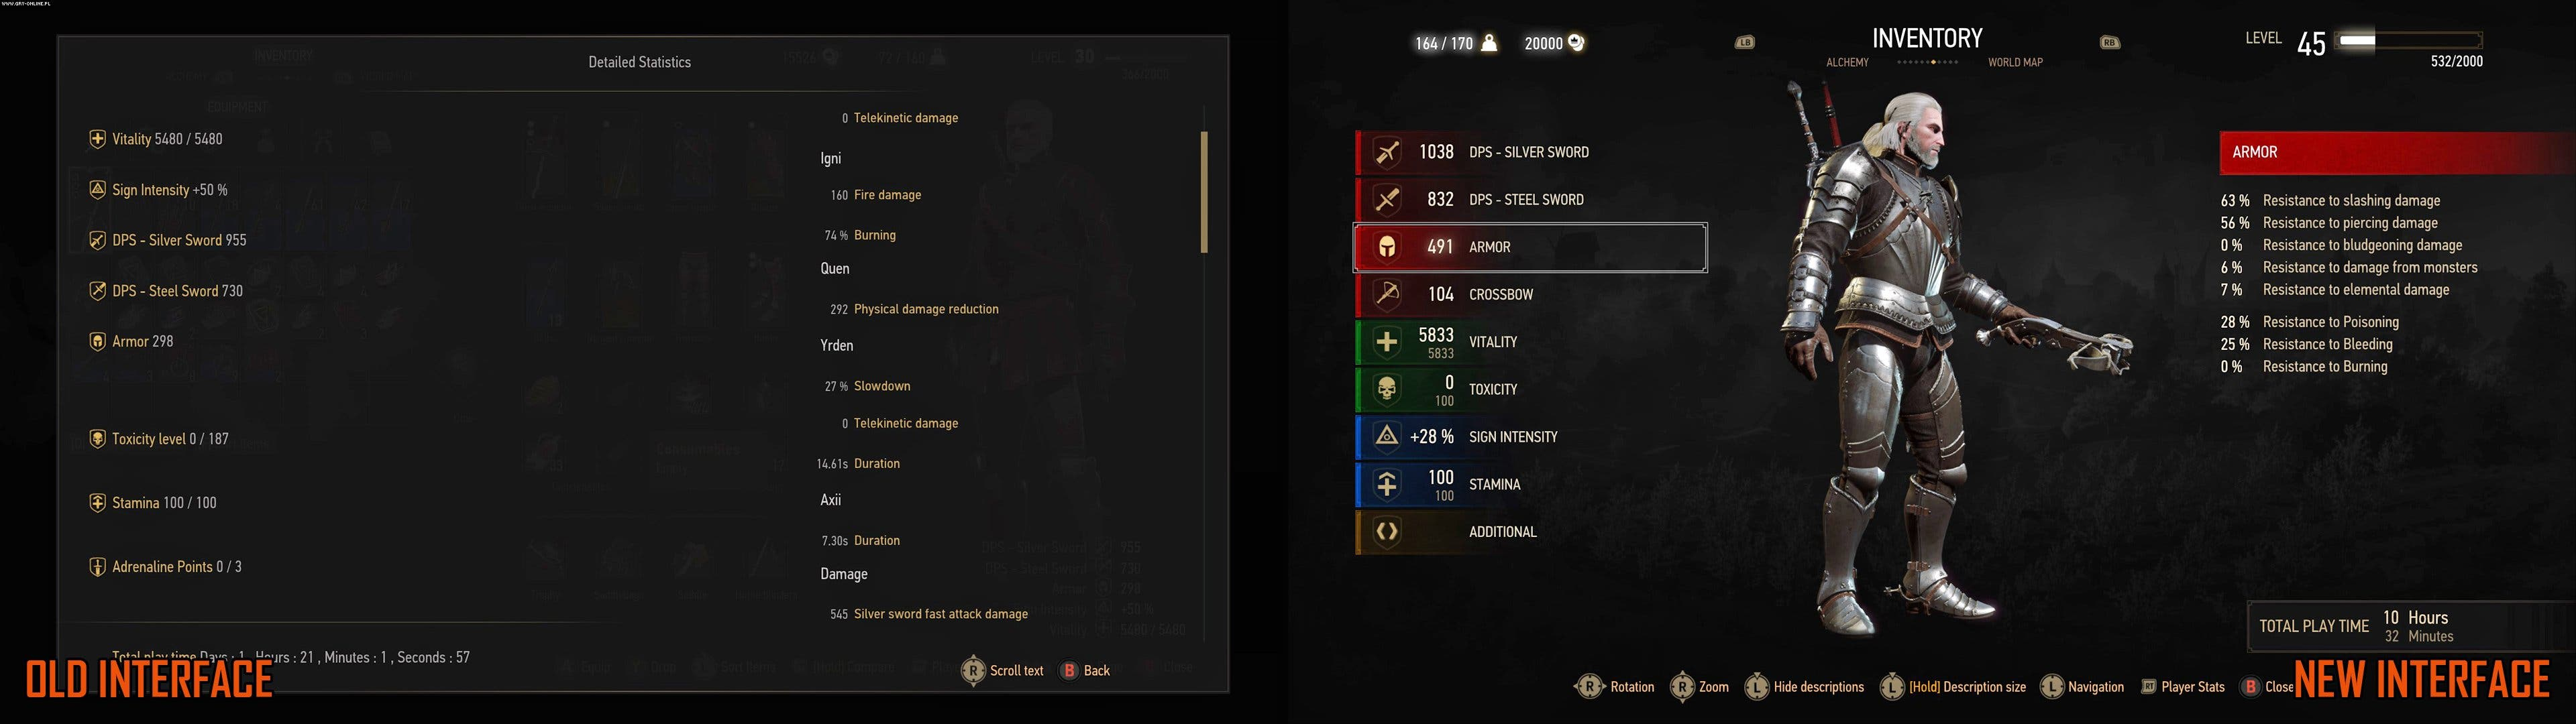 the-witcher-3-blood-and-wine-interface-3